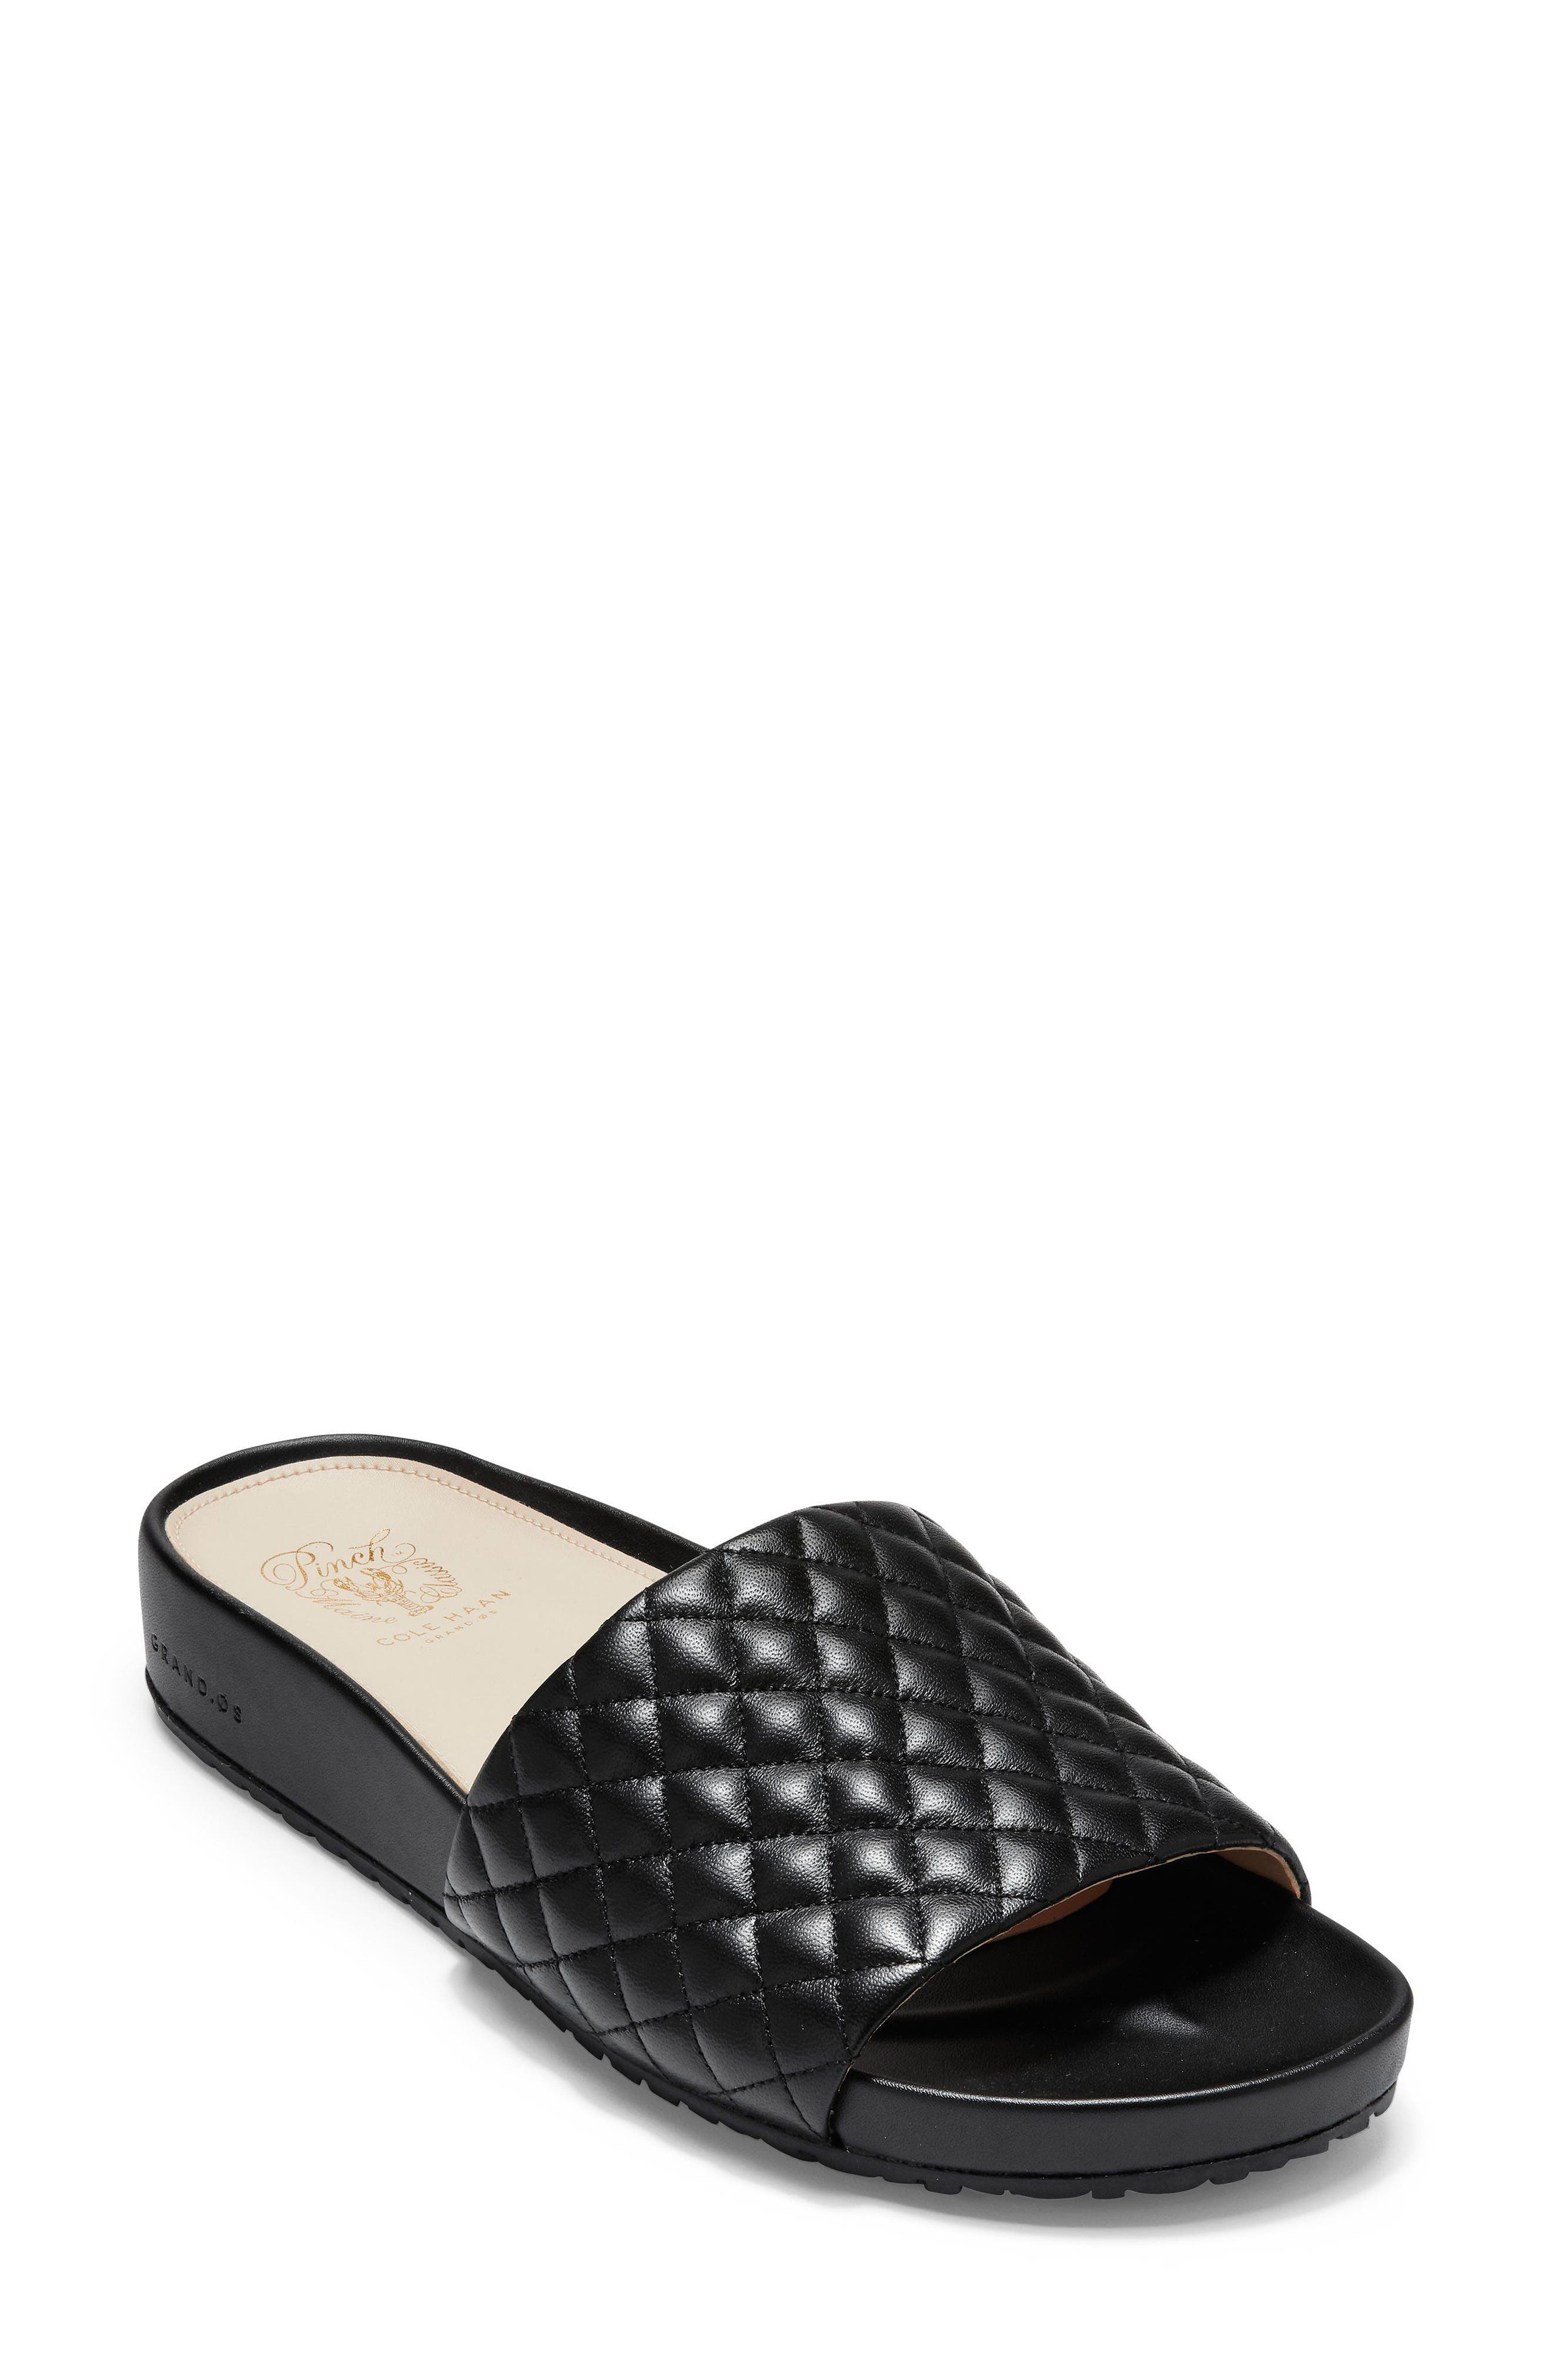 Pinch Montauk Slide Sandal,                             Main thumbnail 1, color,                             Black Quilted Leather